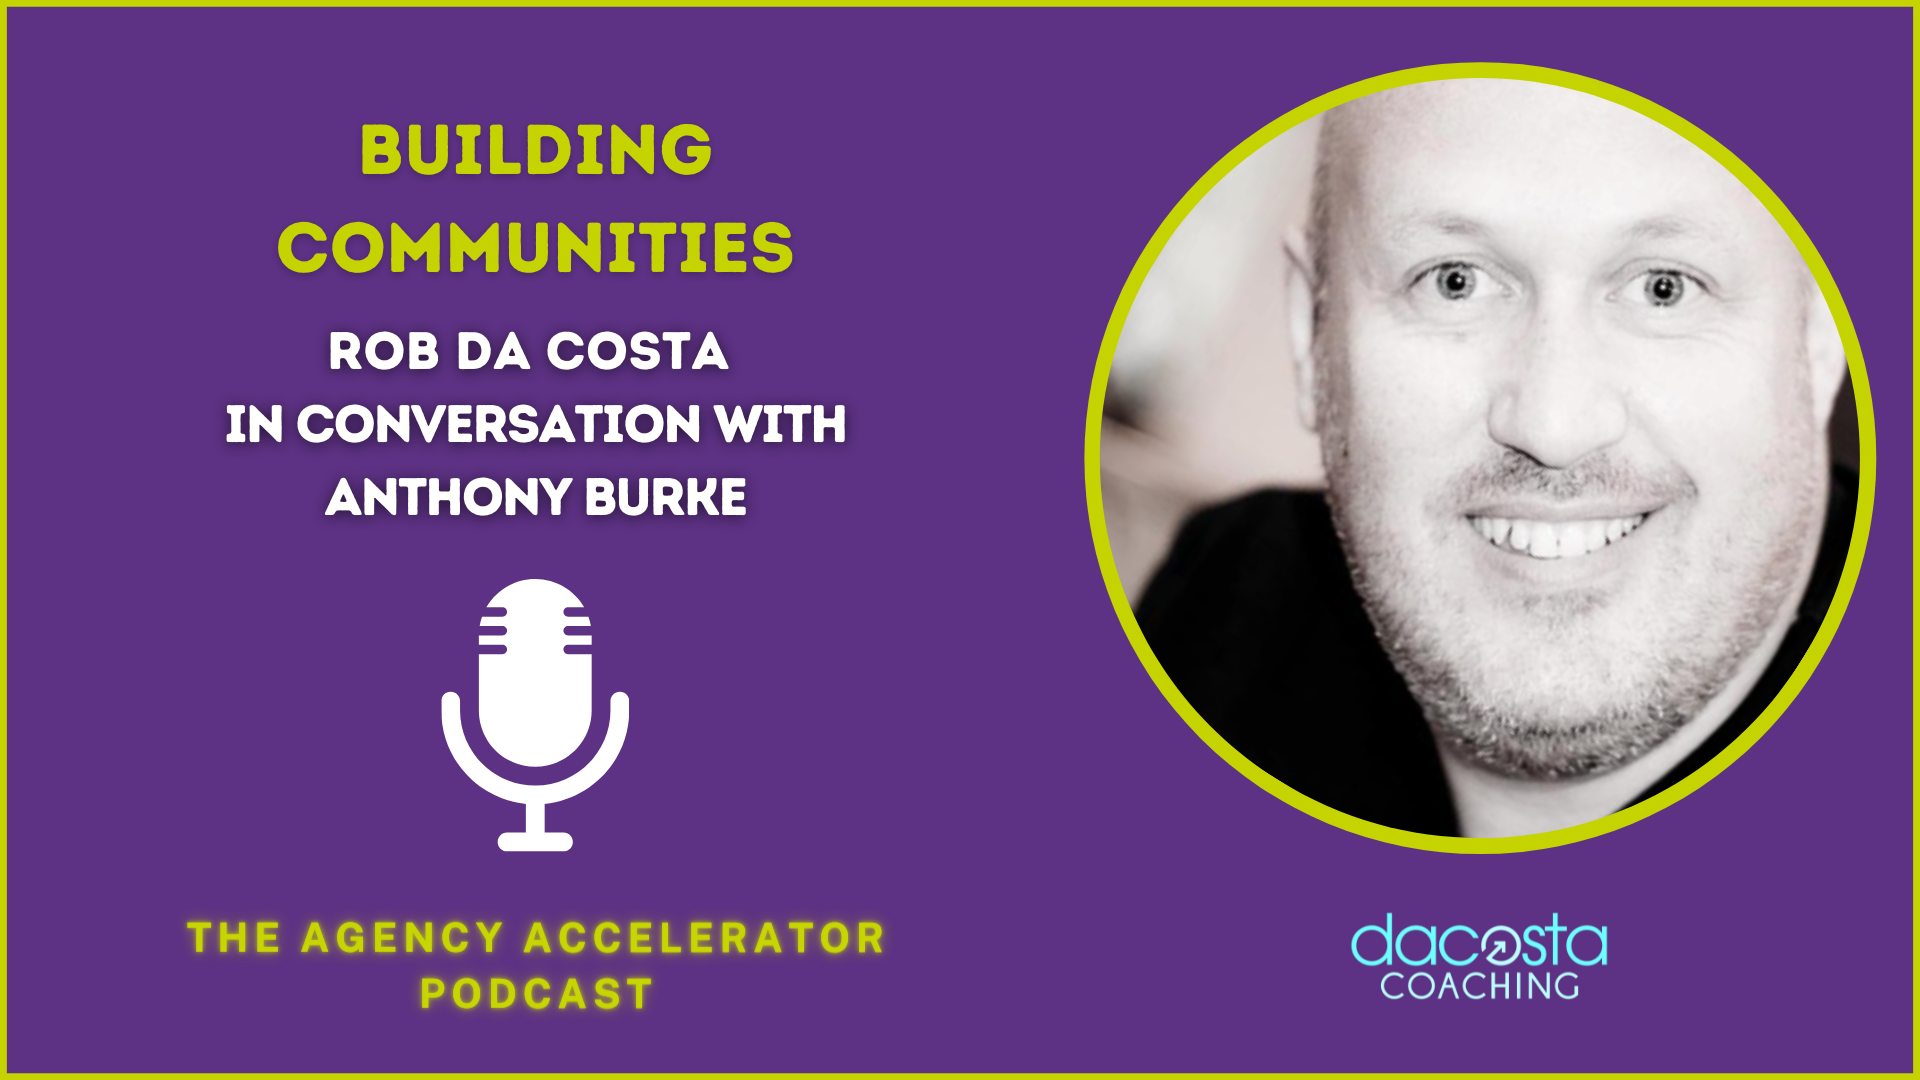 Building Communities with Anthony Burke